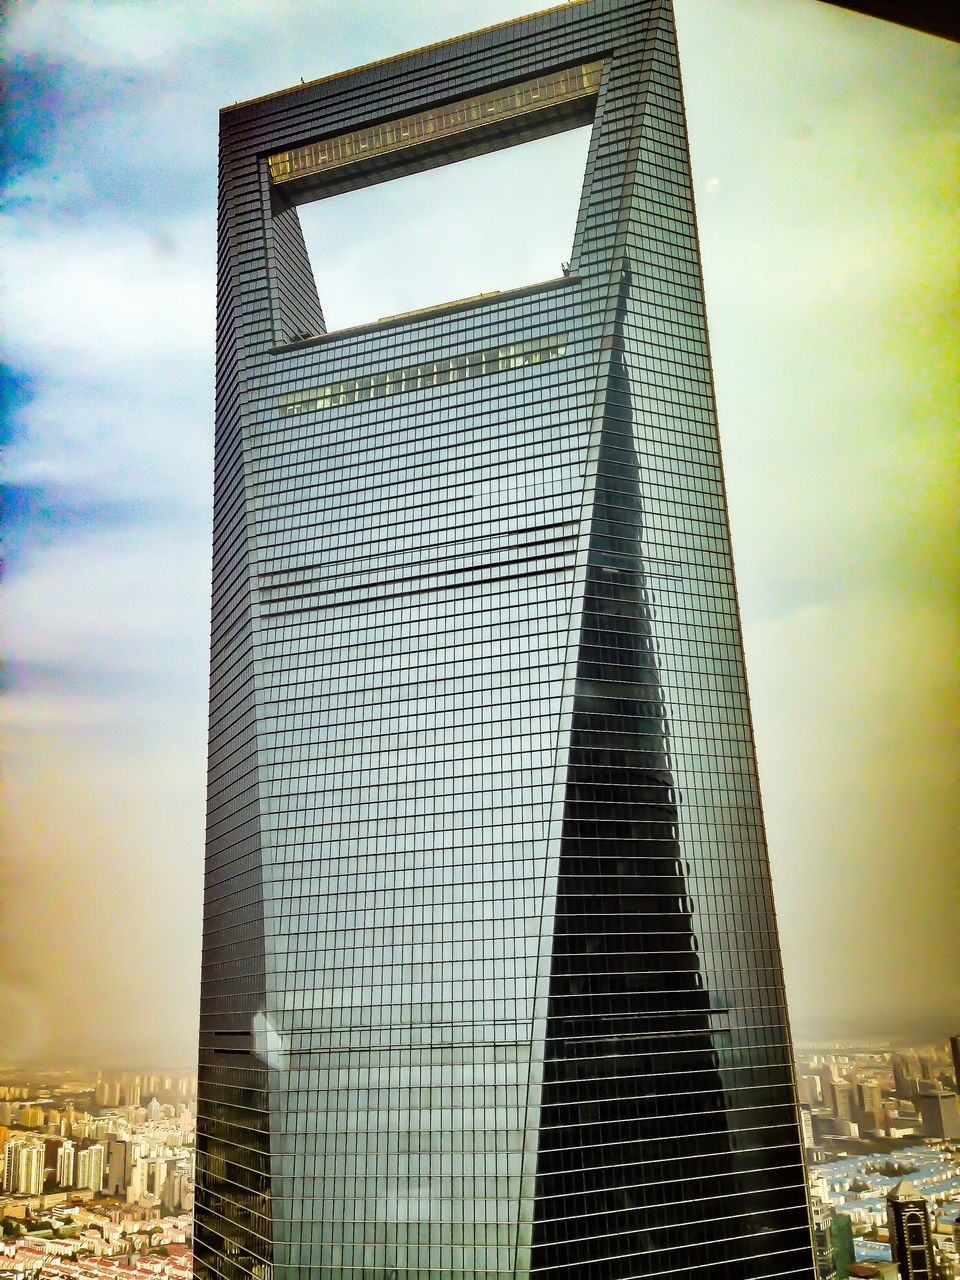 architecture, built structure, skyscraper, building exterior, modern, tall - high, tower, city, sky, low angle view, travel destinations, day, outdoors, cityscape, no people, pyramid